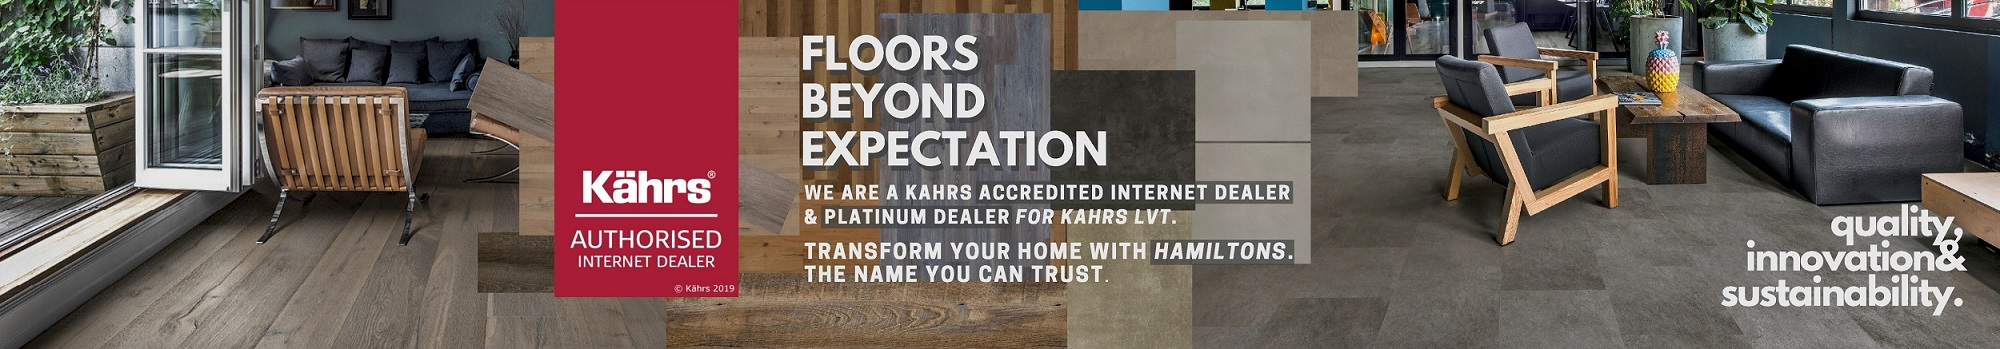 Kahrs_Authorised_Internet_Dealer_Banner_2000_349.jpg